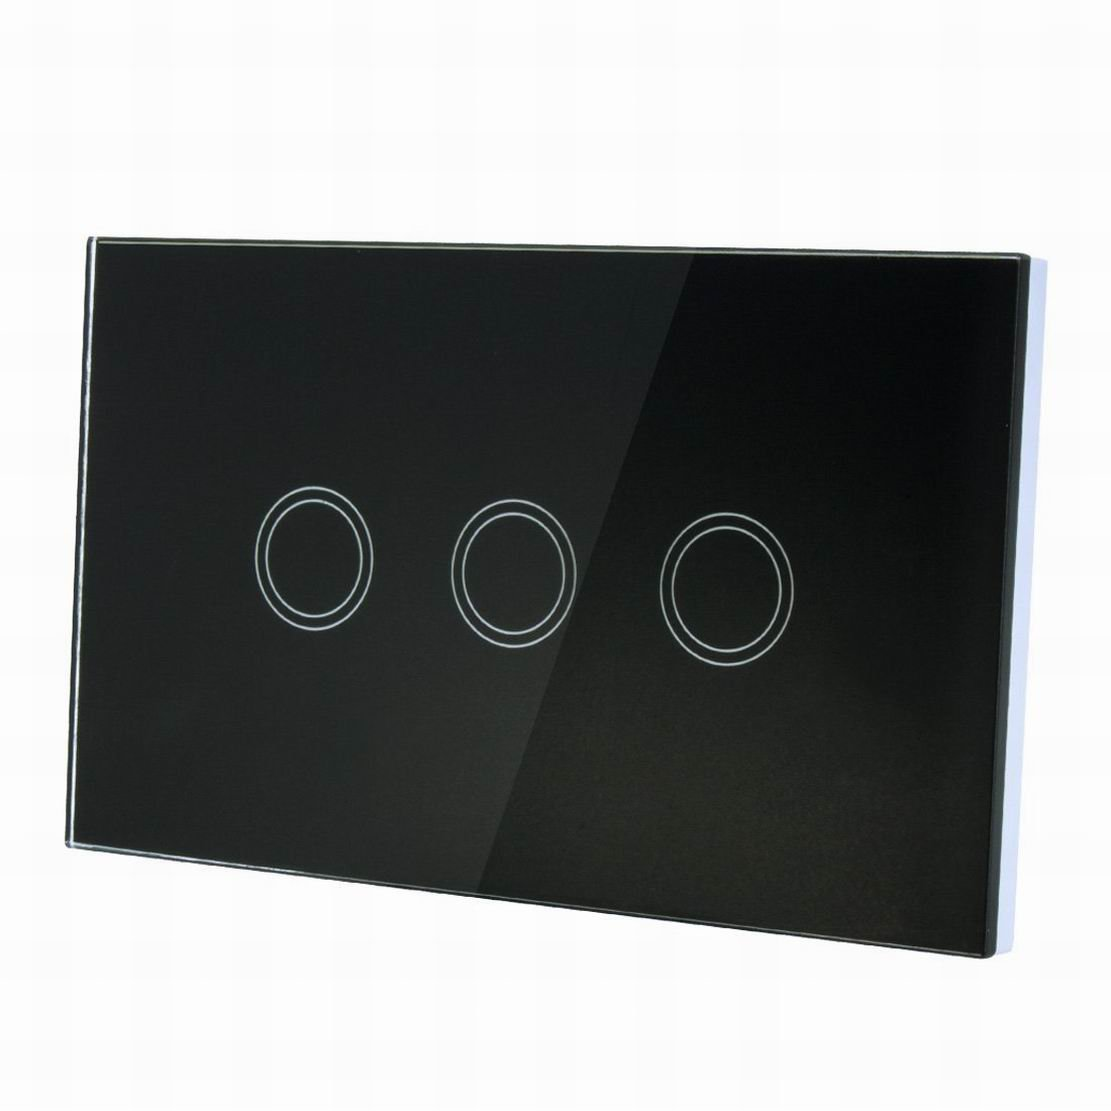 Uptell Touch Wall Light Switch, Luxury Crystal Glass Panel, AC 110-240V 1 Way 3 Gang Smart Touch Switch Black US